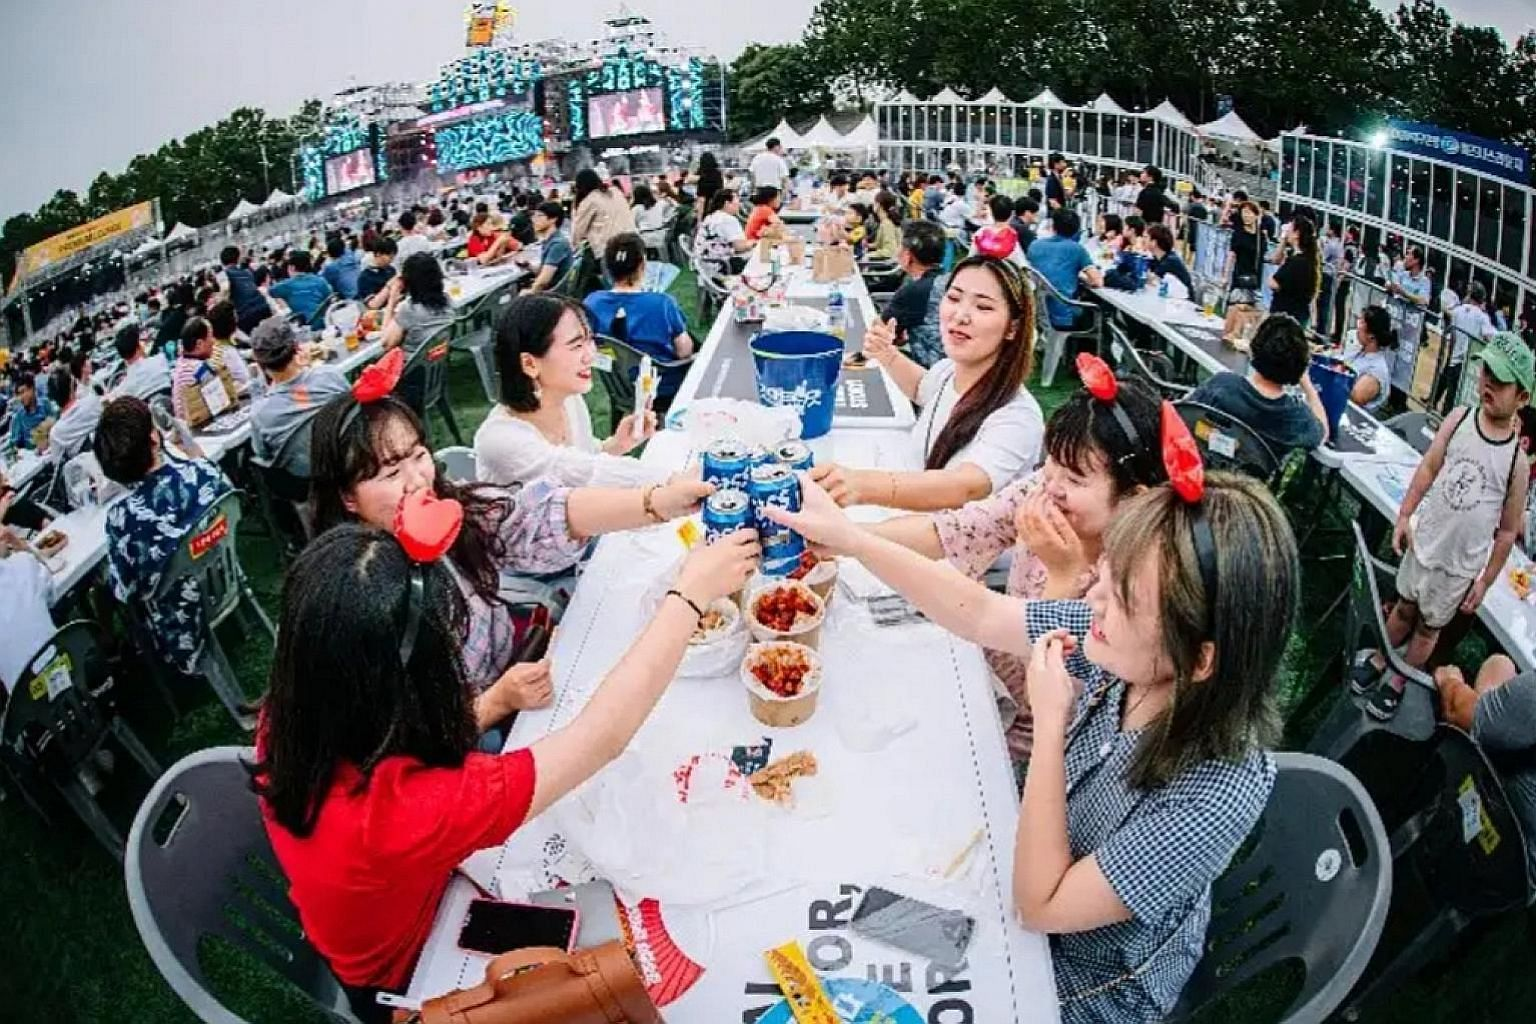 Visitors to the Daegu Chimac Festival enjoying beer and fried chicken at a park in the South Korean city of Daegu over five days in July. The event now attracts more than a million visitors yearly amid the chimaek craze. PHOTO: DAEGU CHIMAC FESTIVAL